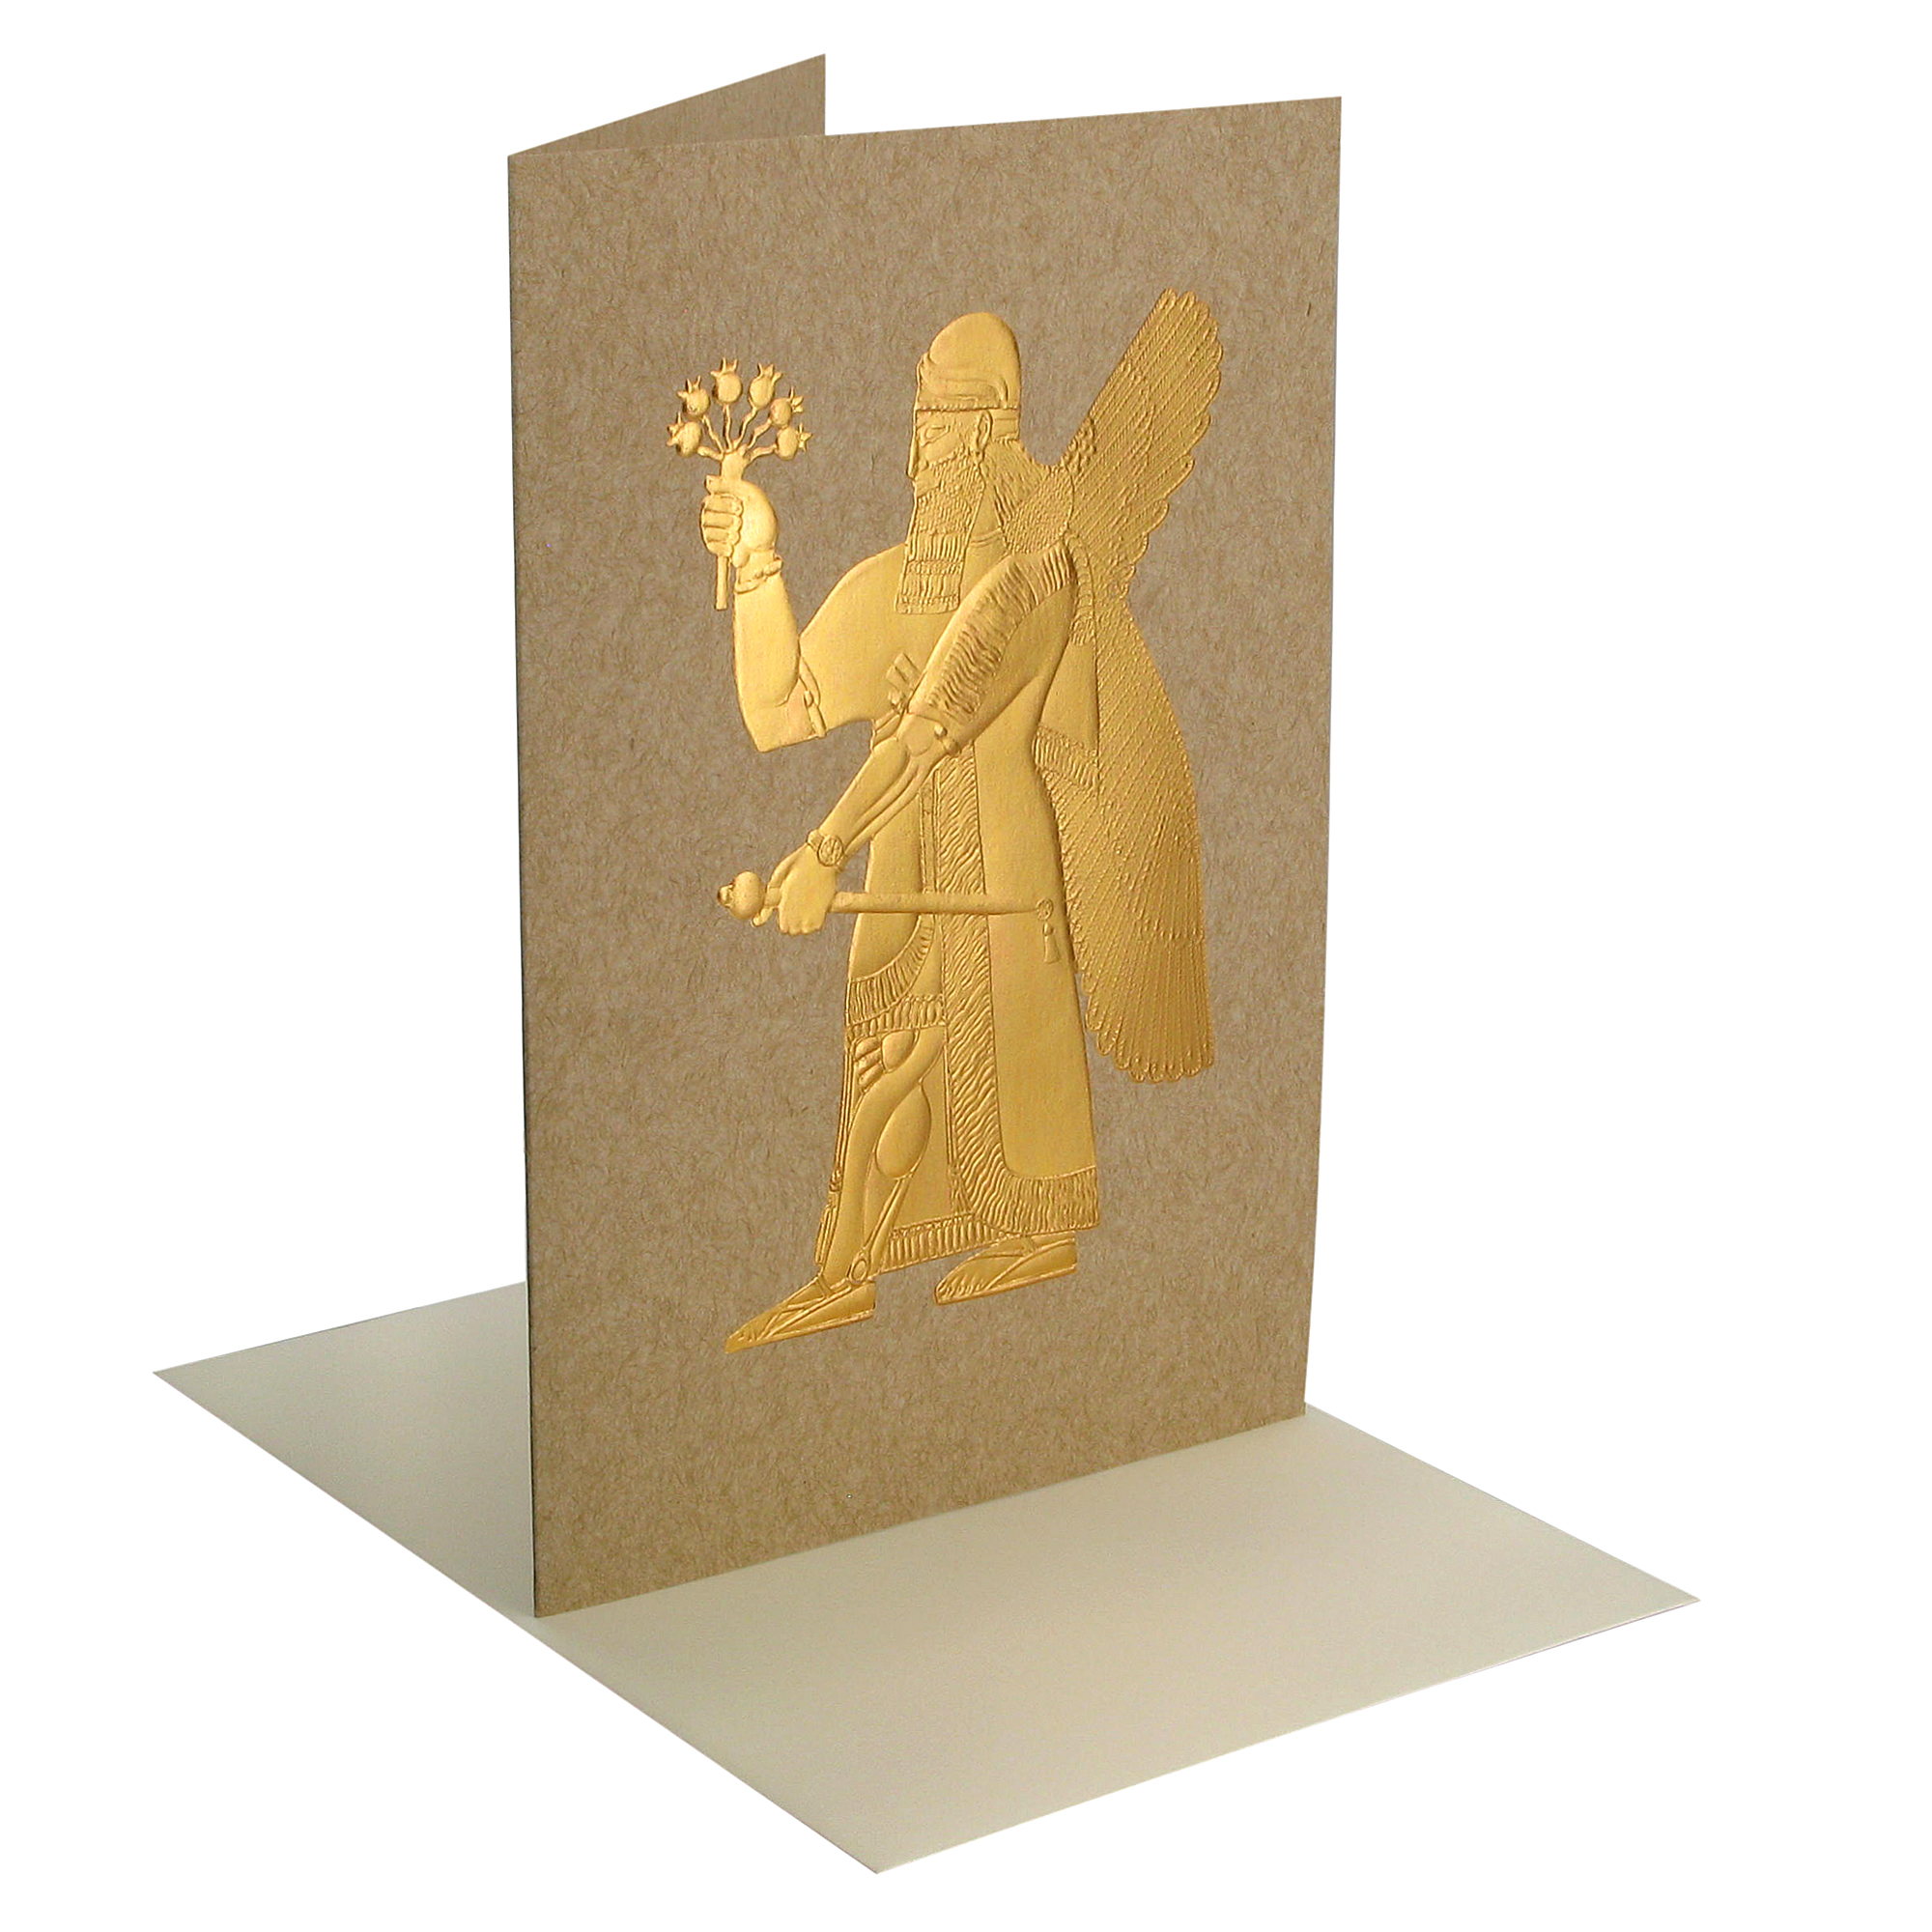 Assyrian winged divinity greeting card